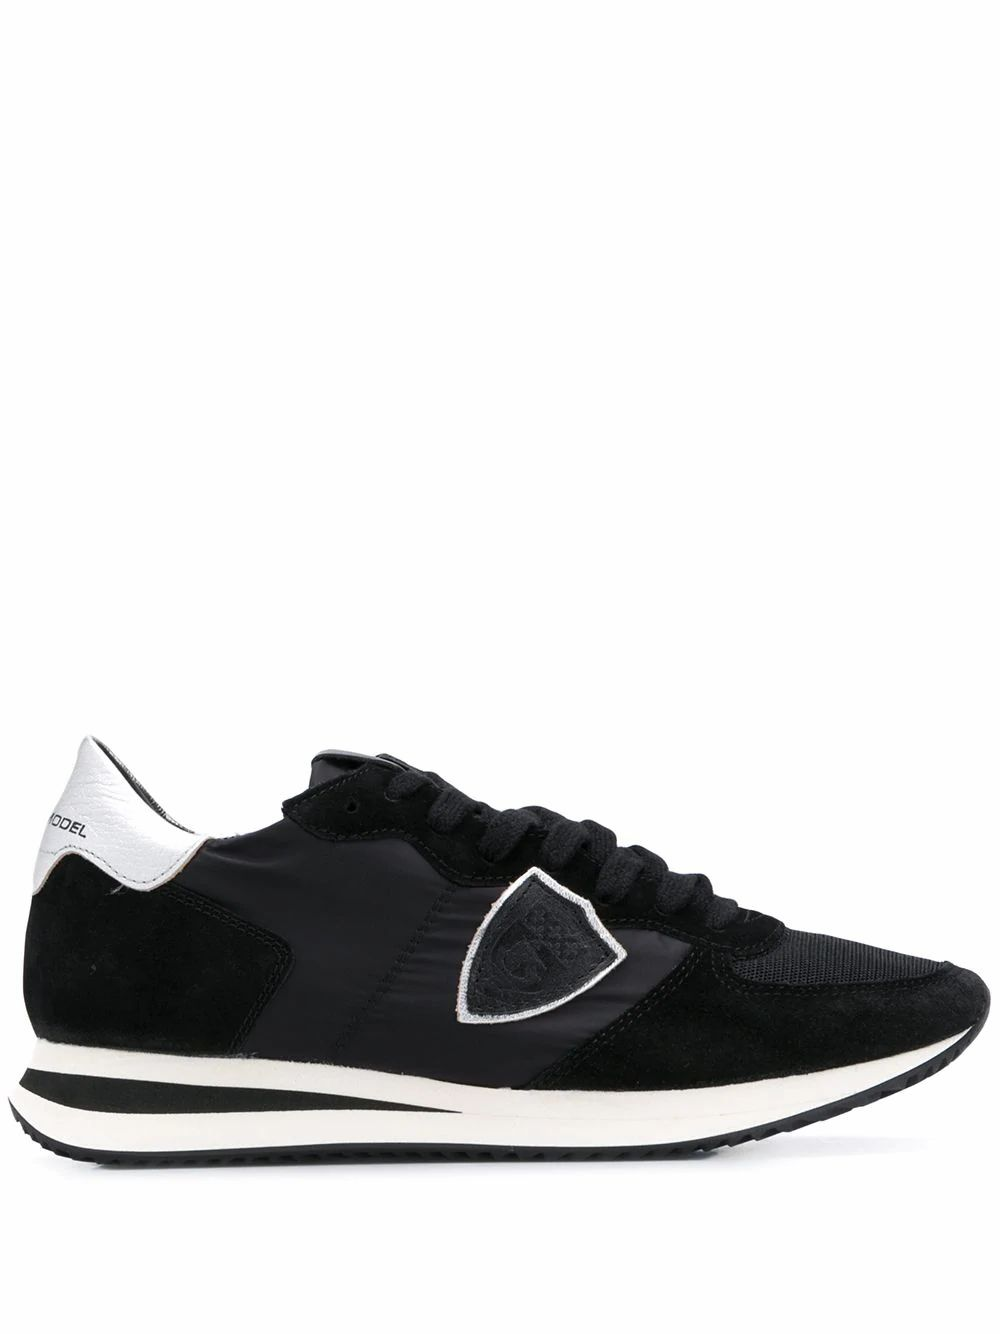 Philippe Model PHILIPPE MODEL WOMEN'S TZLD2113 BLACK LEATHER SNEAKERS